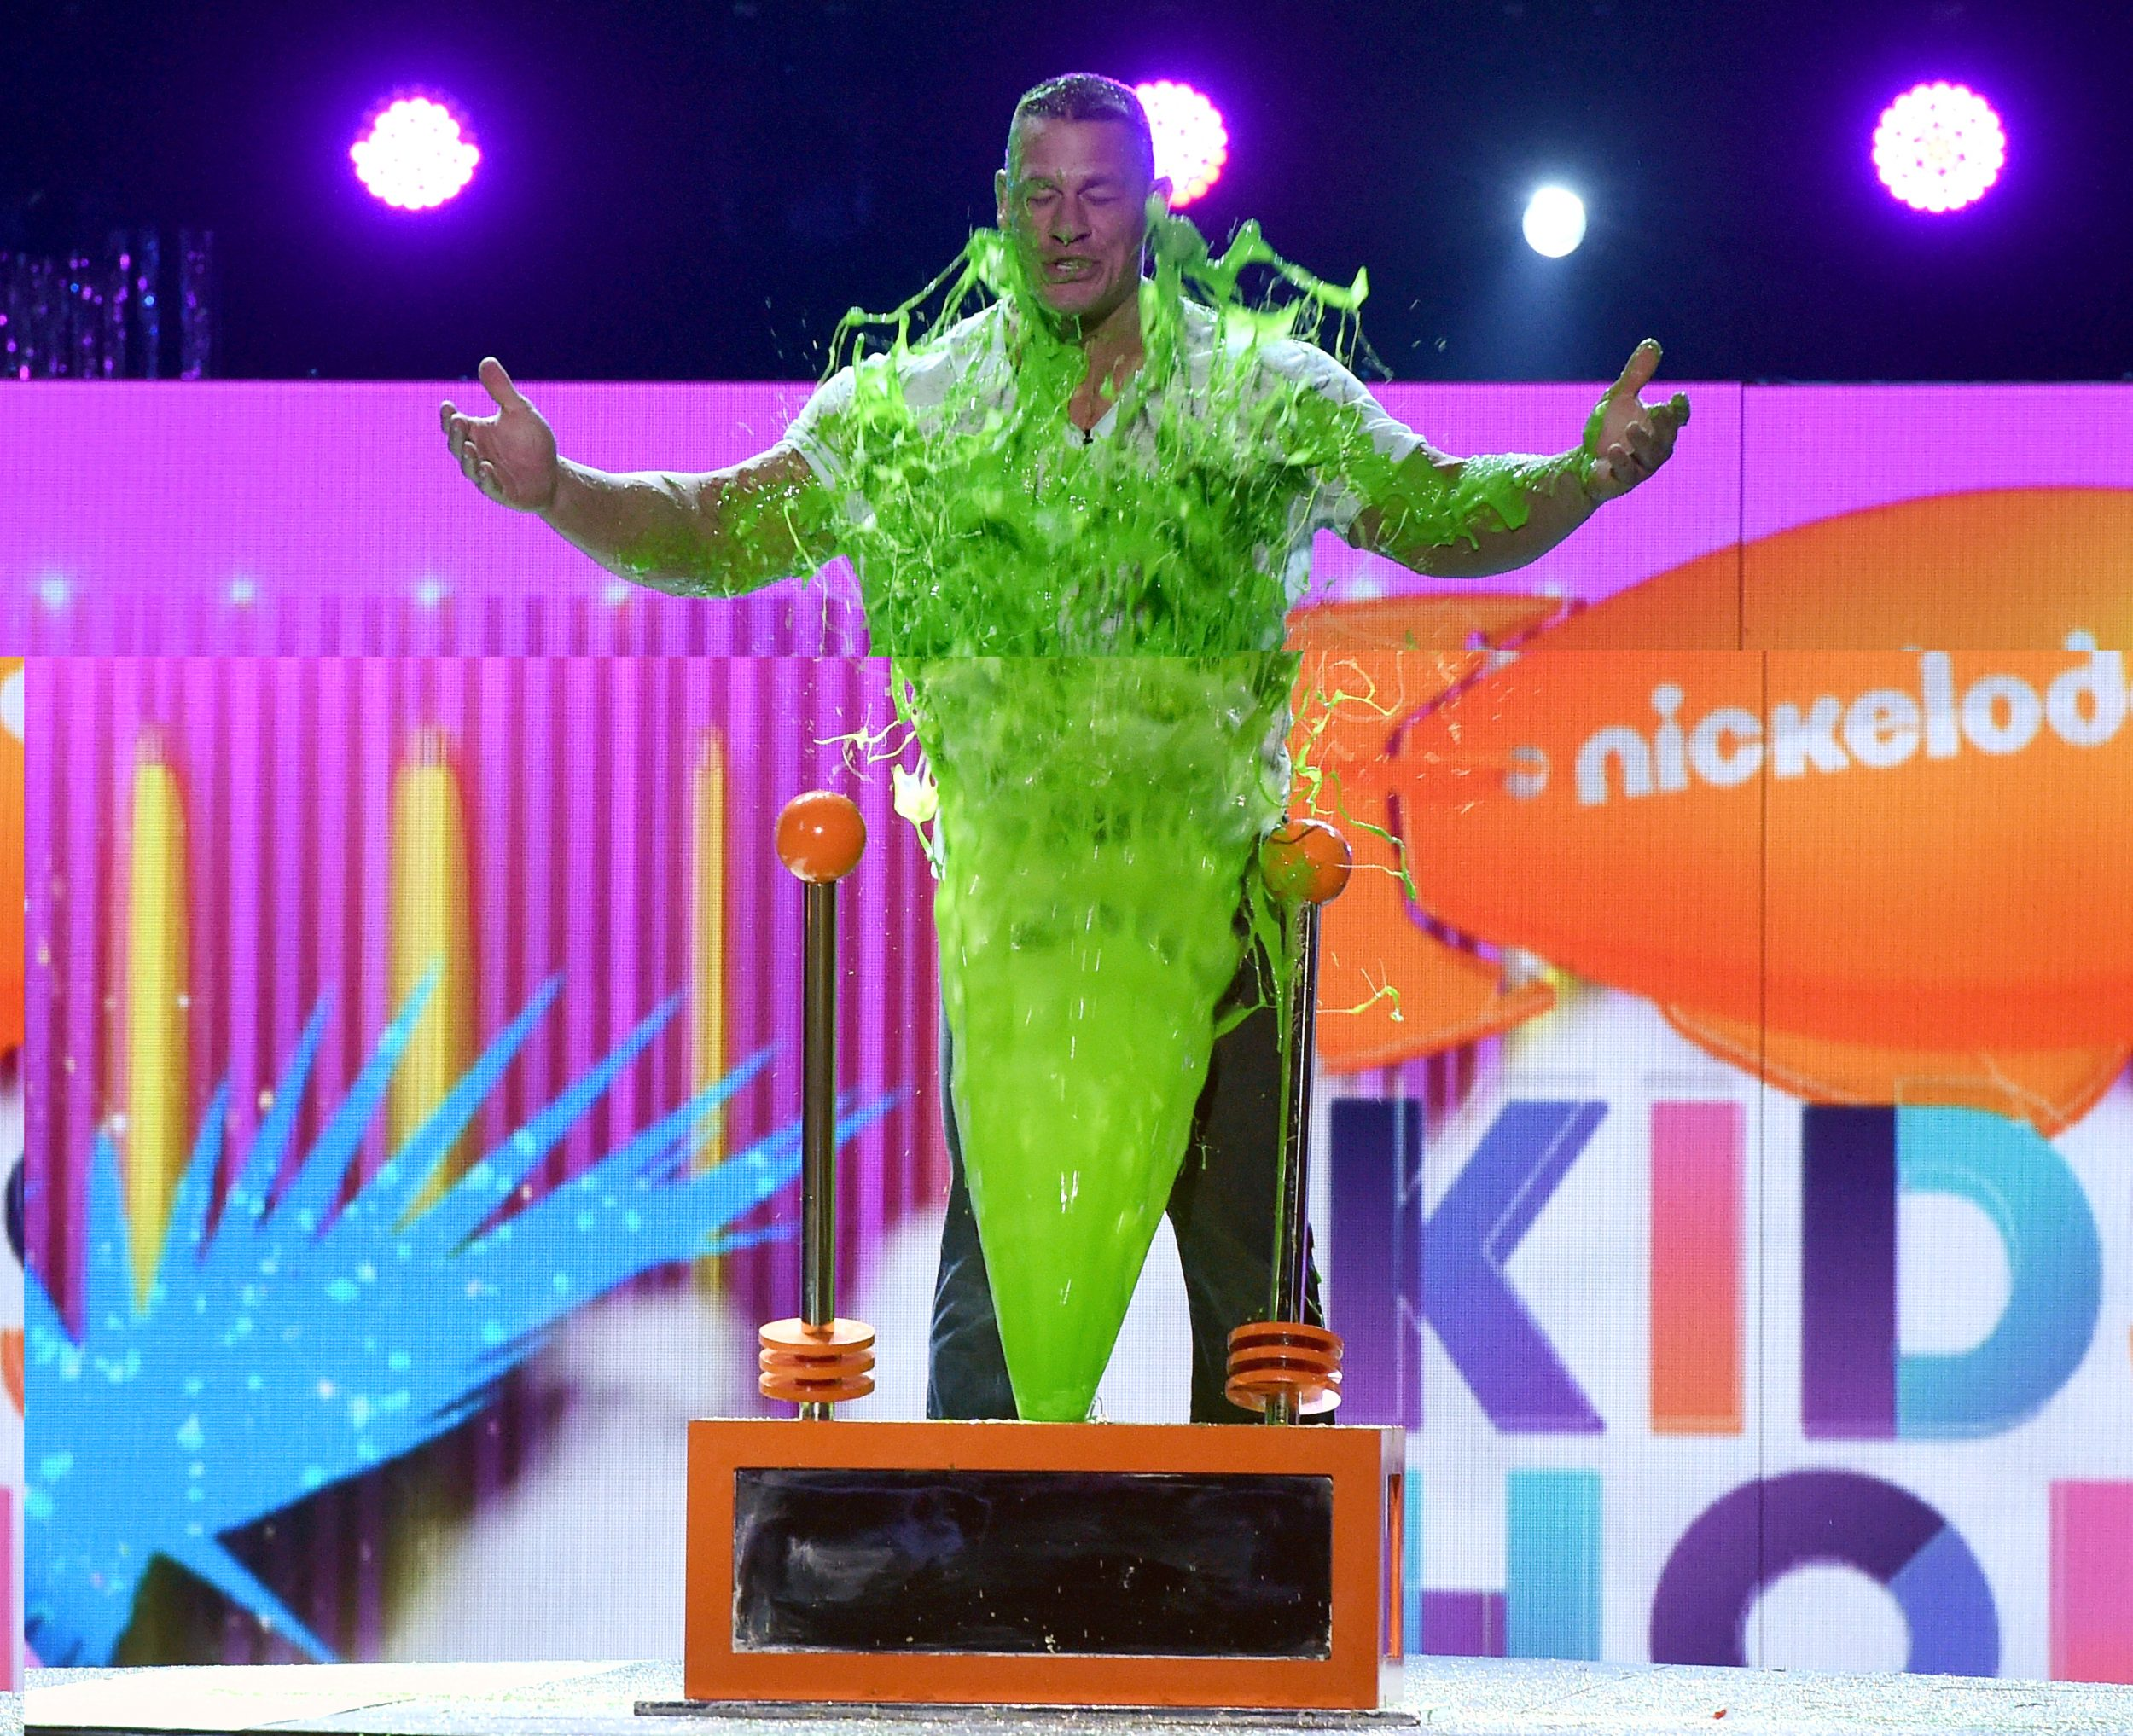 LOS ANGELES, CA - MARCH 11:  Host John Cena gets slimed onstage at Nickelodeon's 2017 Kids' Choice Awards at USC Galen Center on March 11, 2017 in Los Angeles, California.  (Photo by Kevin Winter/Getty Images - Issued to Media by Nickelodeon)